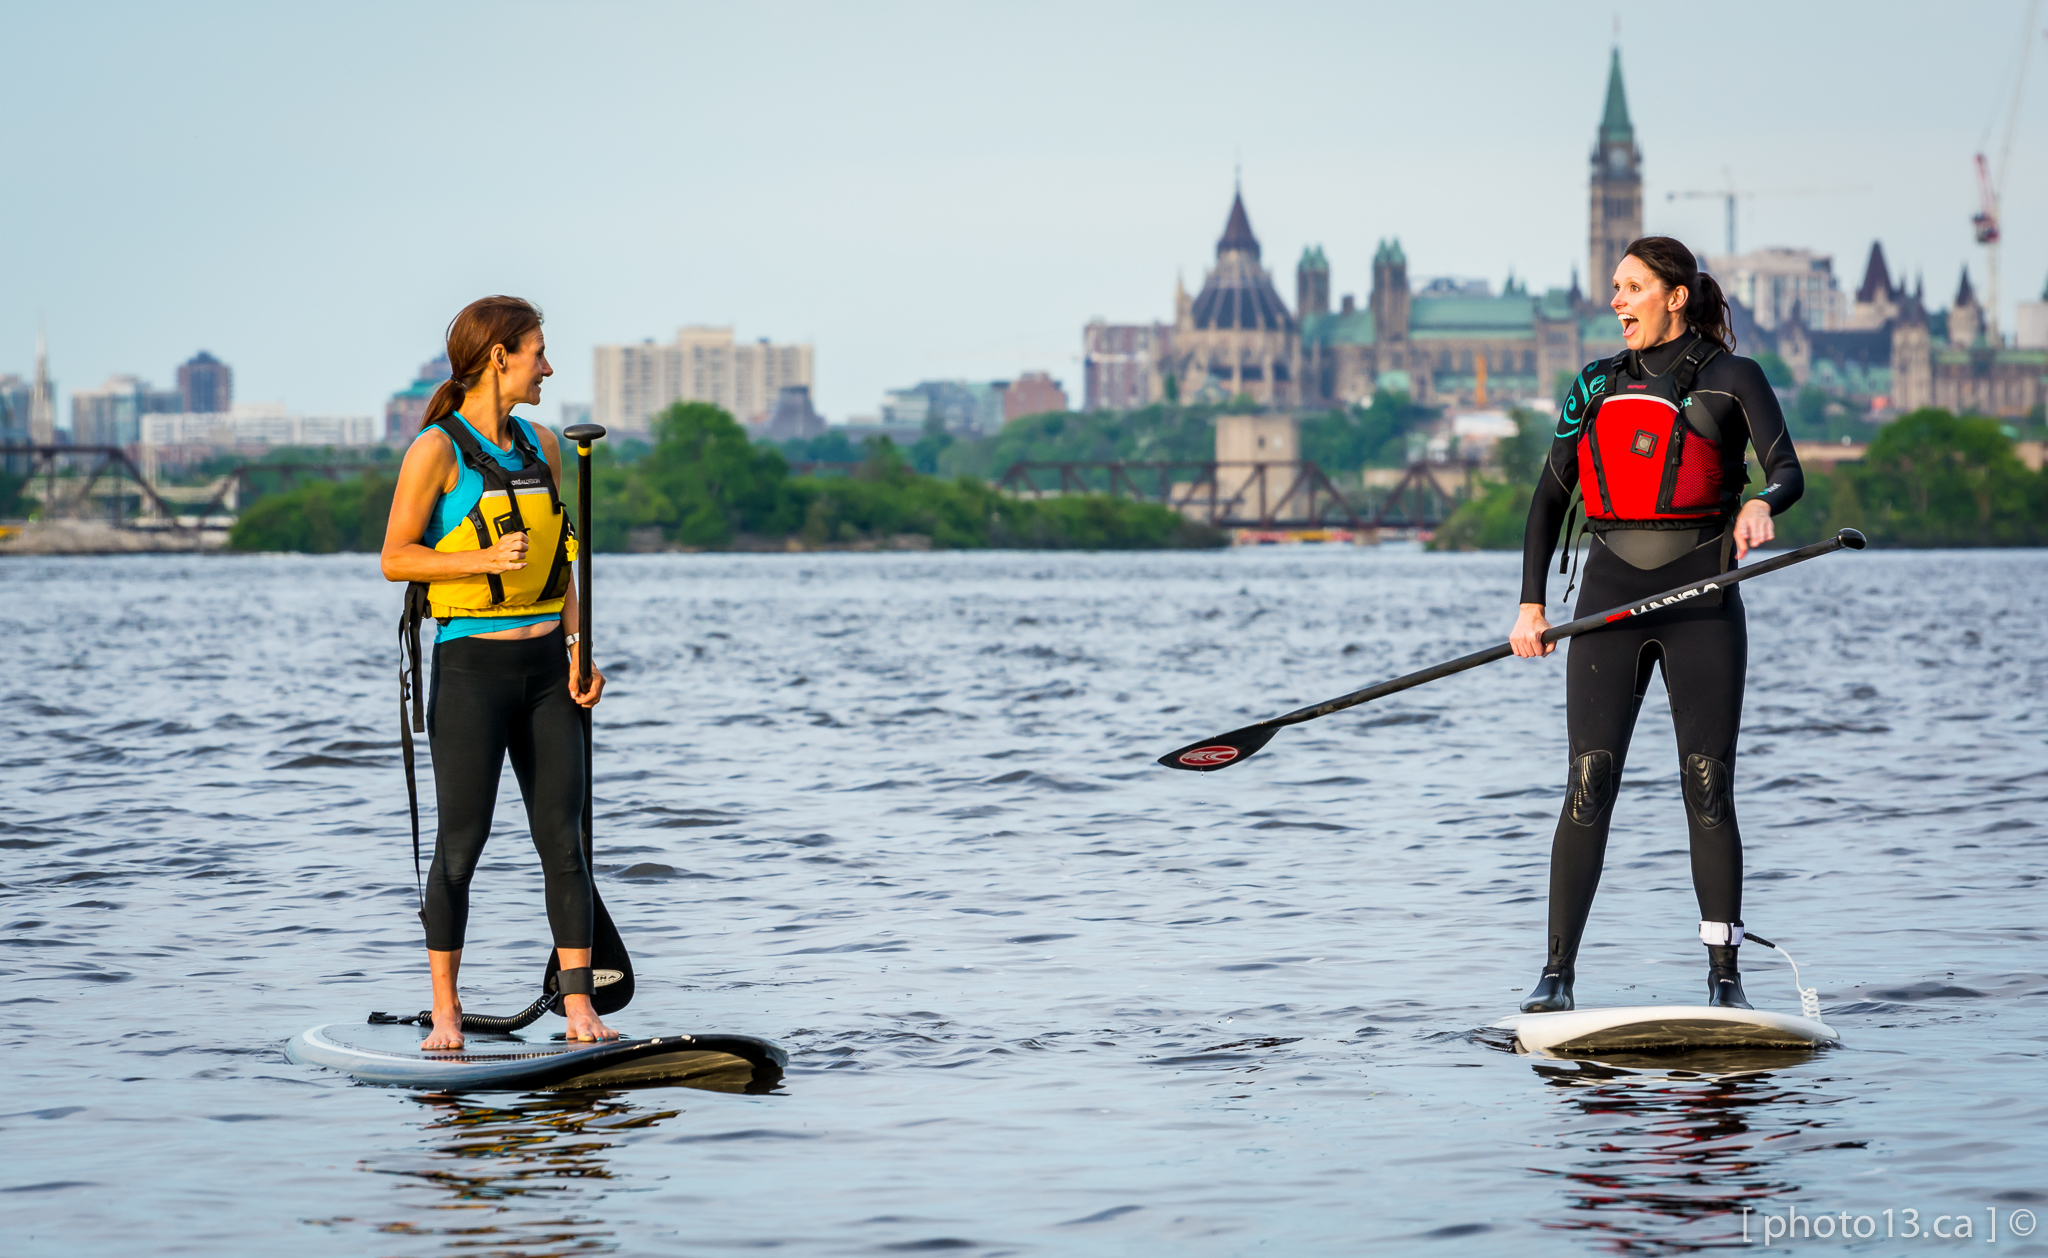 Experience Stand Up Paddleboarding